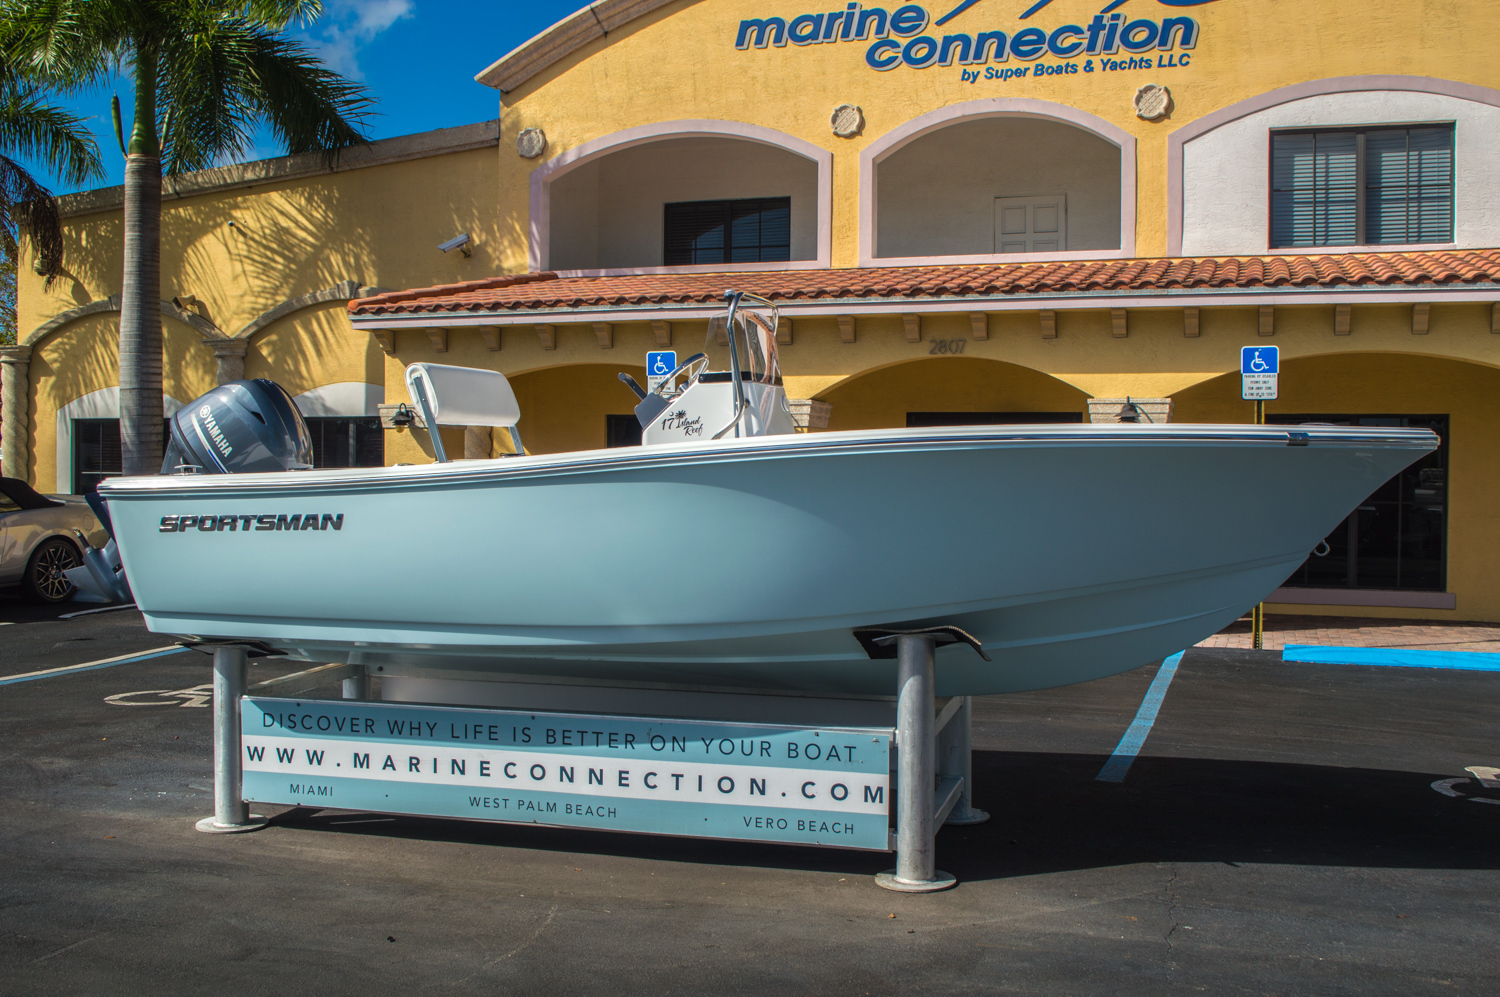 Thumbnail 1 for New 2016 Sportsman 17 Island Reef boat for sale in Vero Beach, FL